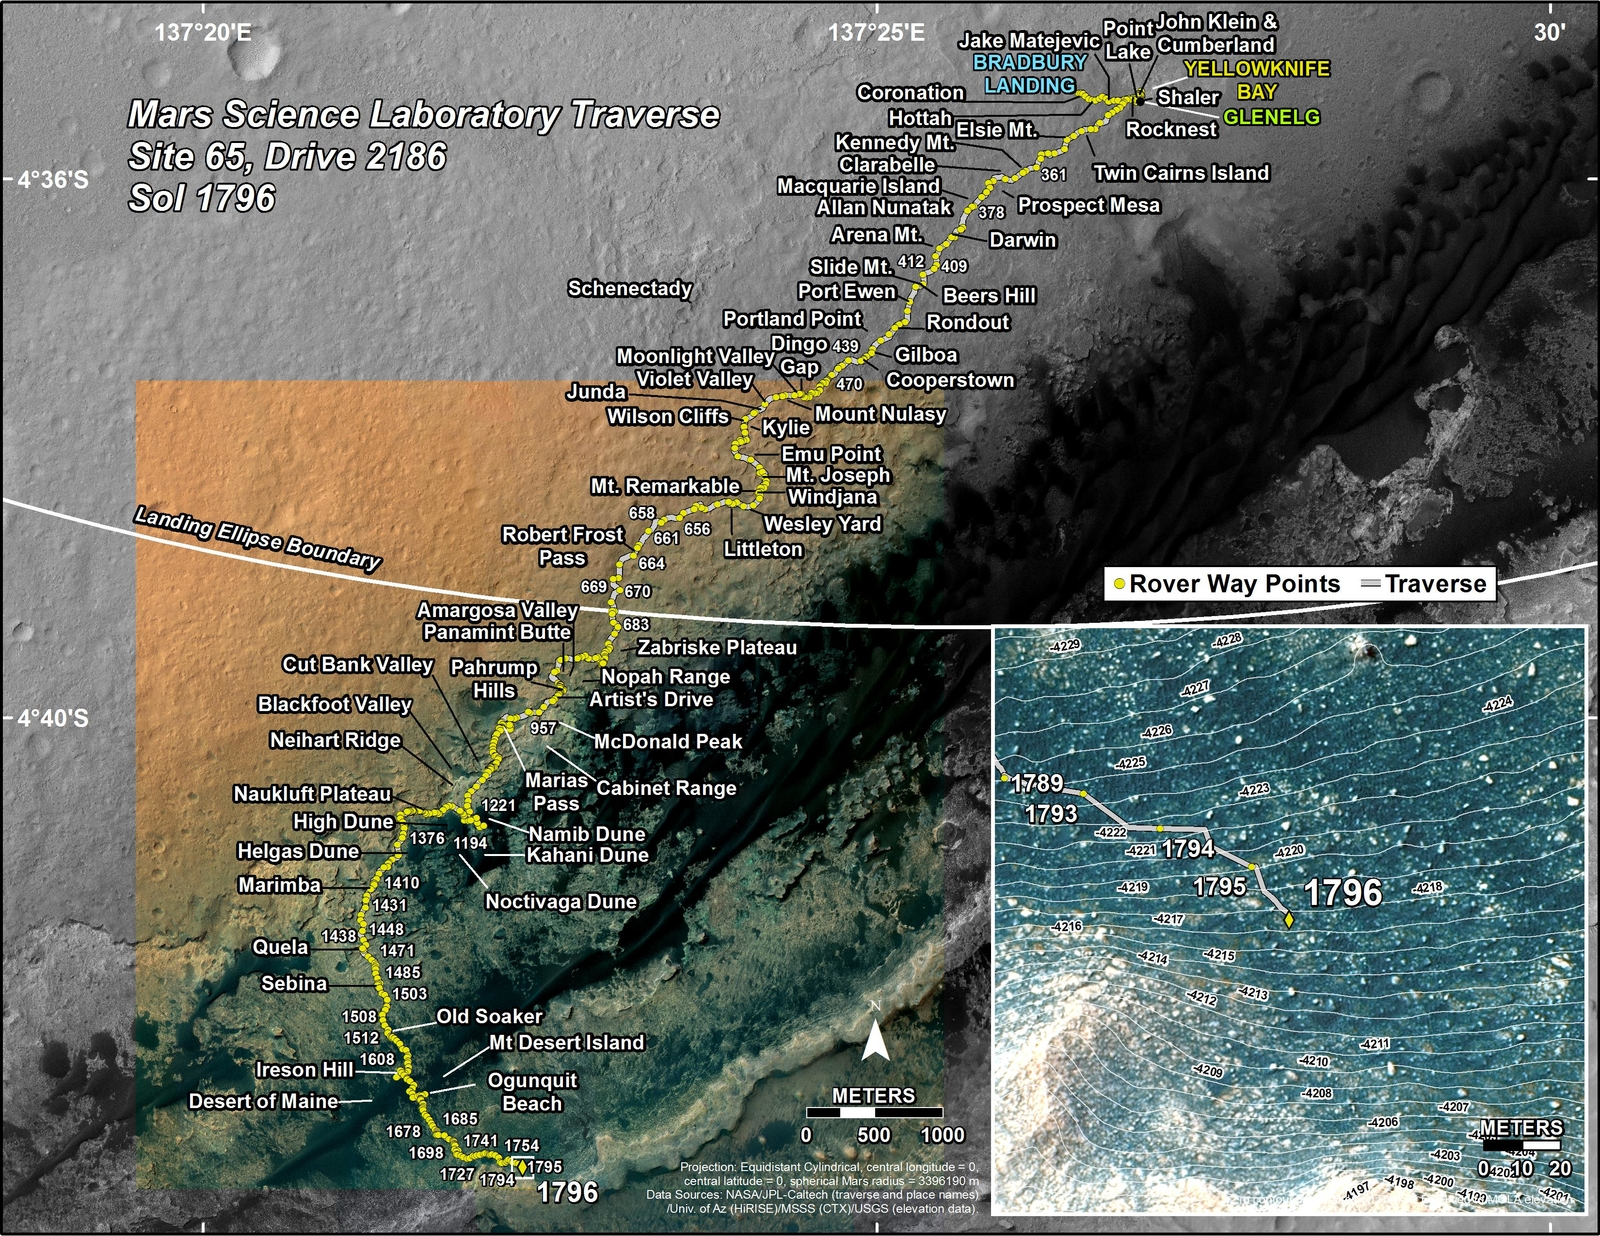 This map shows the route driven by NASA's Mars rover Curiosity through the 1796 Martian day, or sol, of the rover's mission on Mars (August 25, 2017).